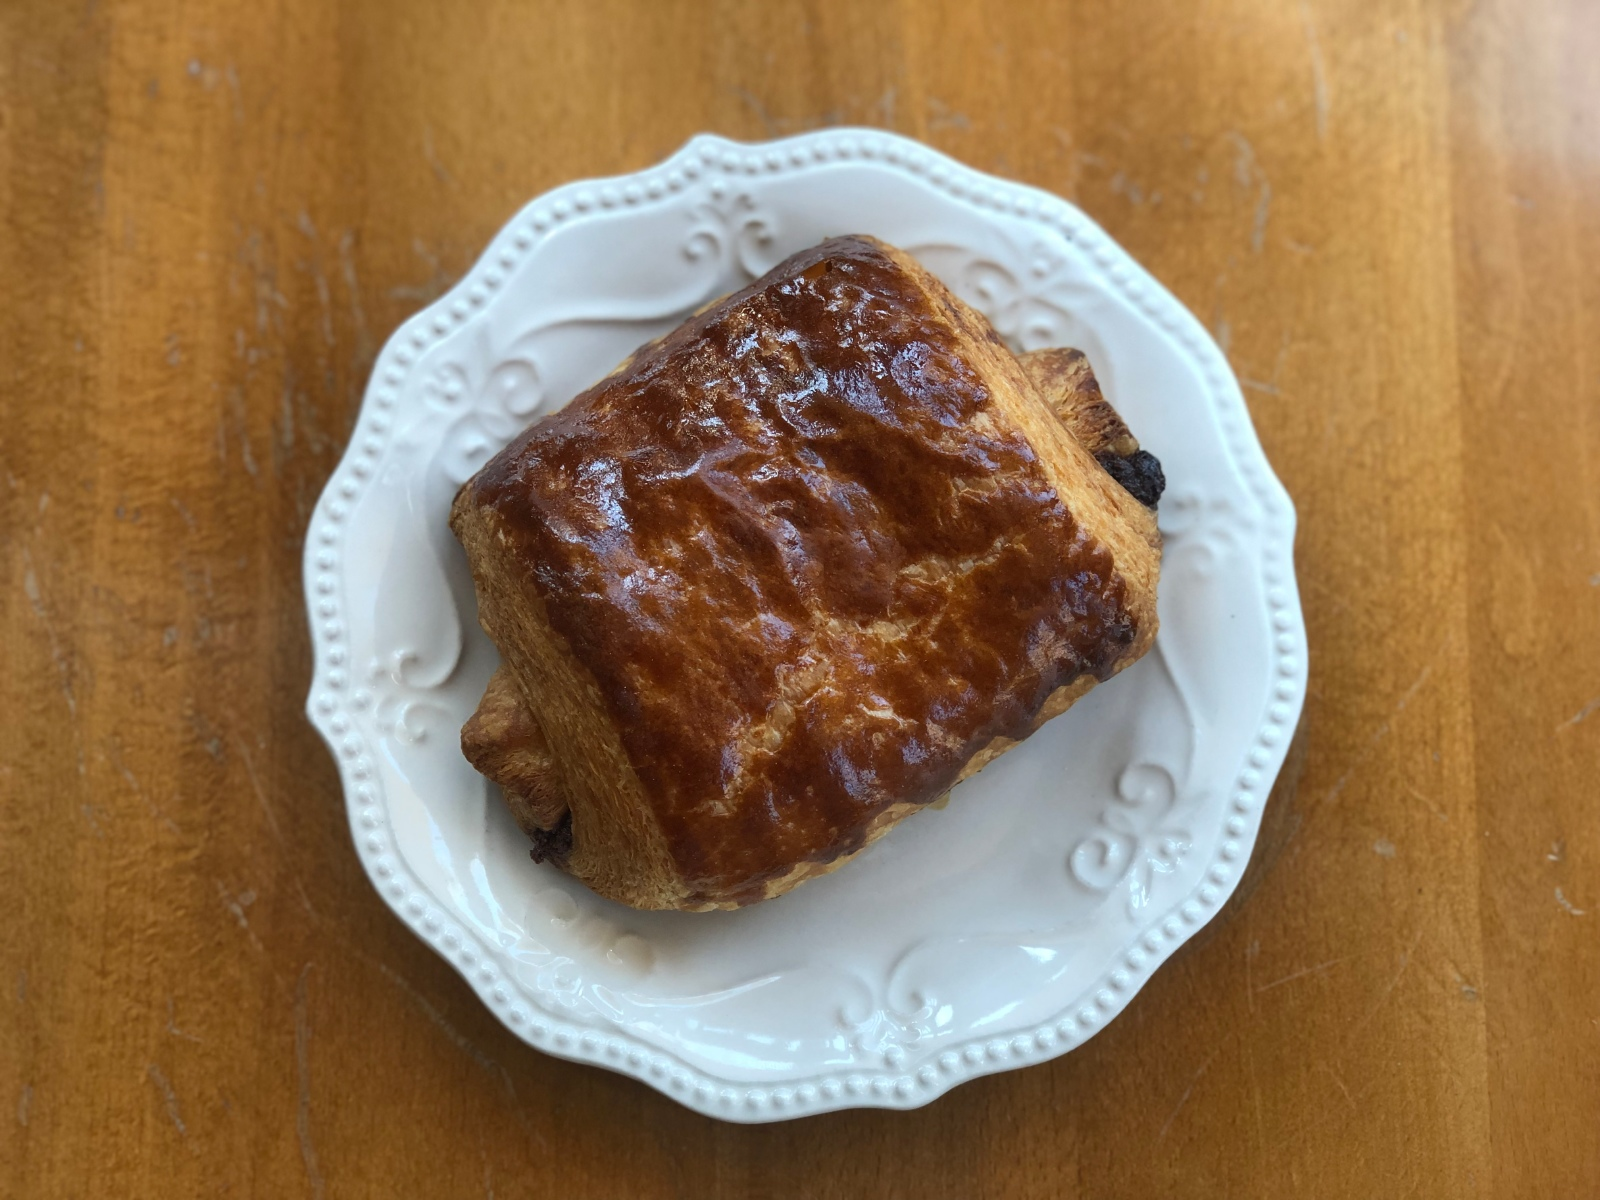 Baked To Perfection: Pan Au Chocolat Fit For Potheads From Cafe Marie-Jeanne